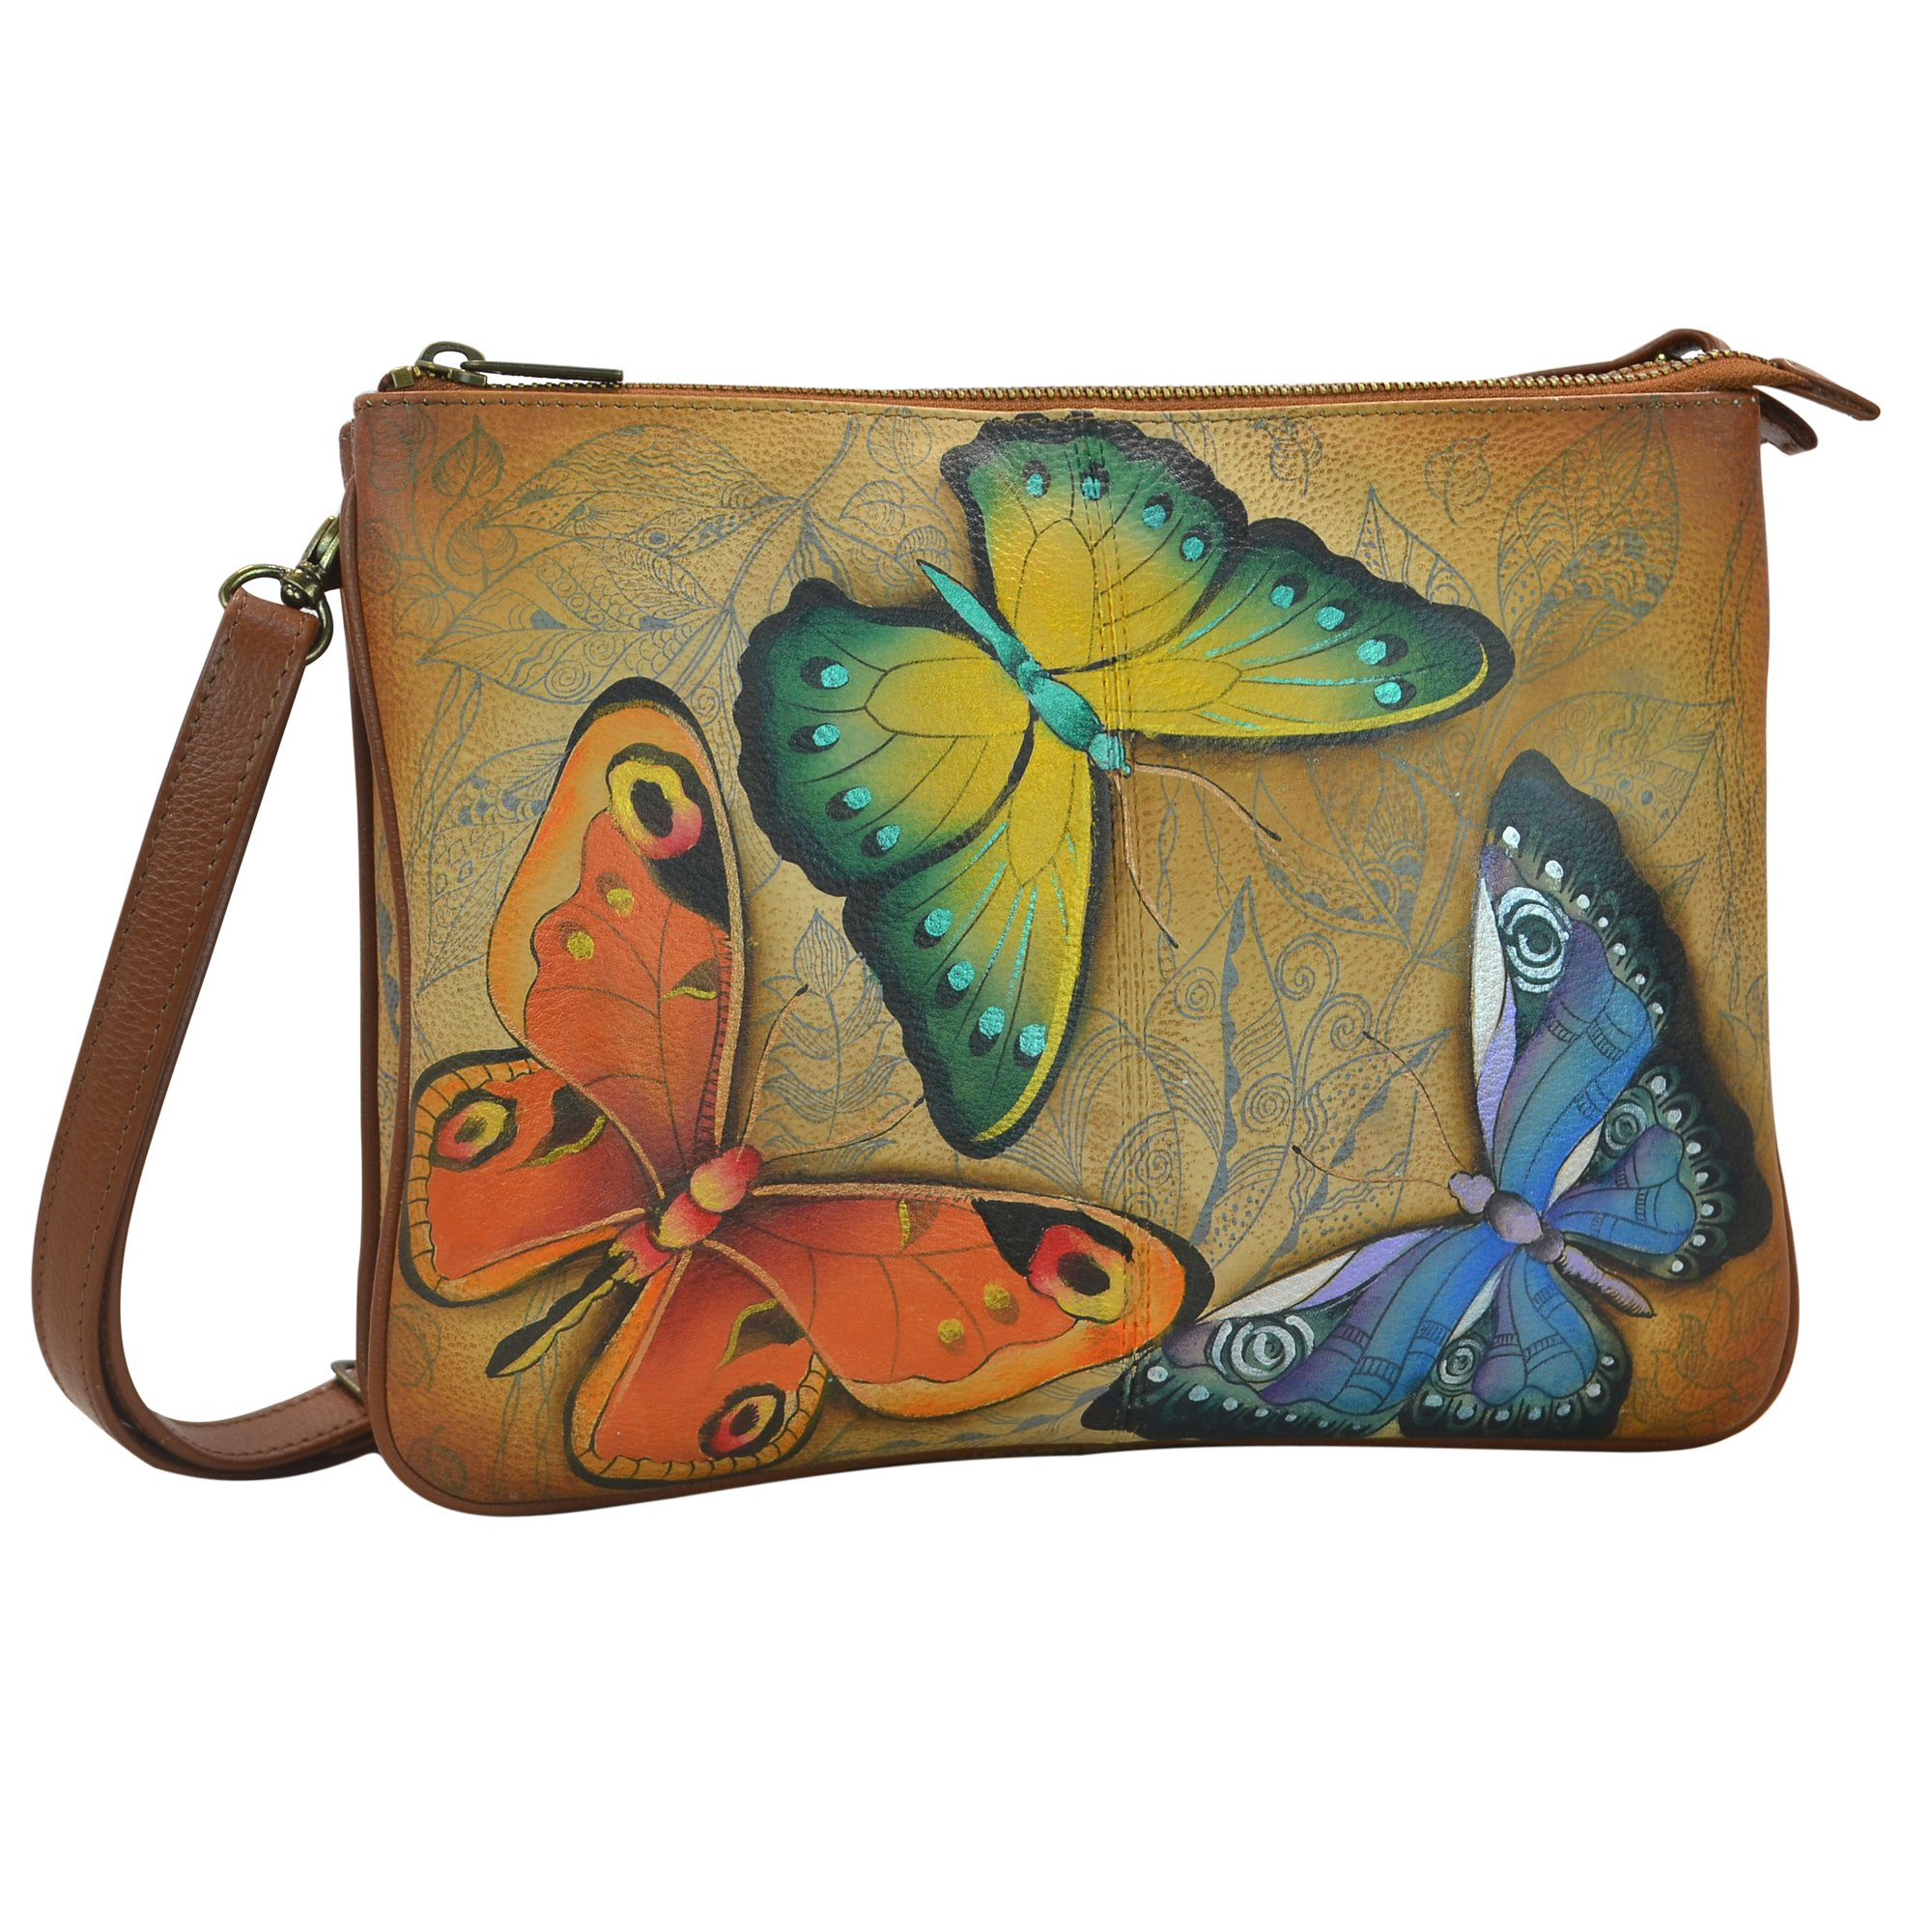 Anuschka Handpainted Leather Triple Compartment Crossbody, Earth Song